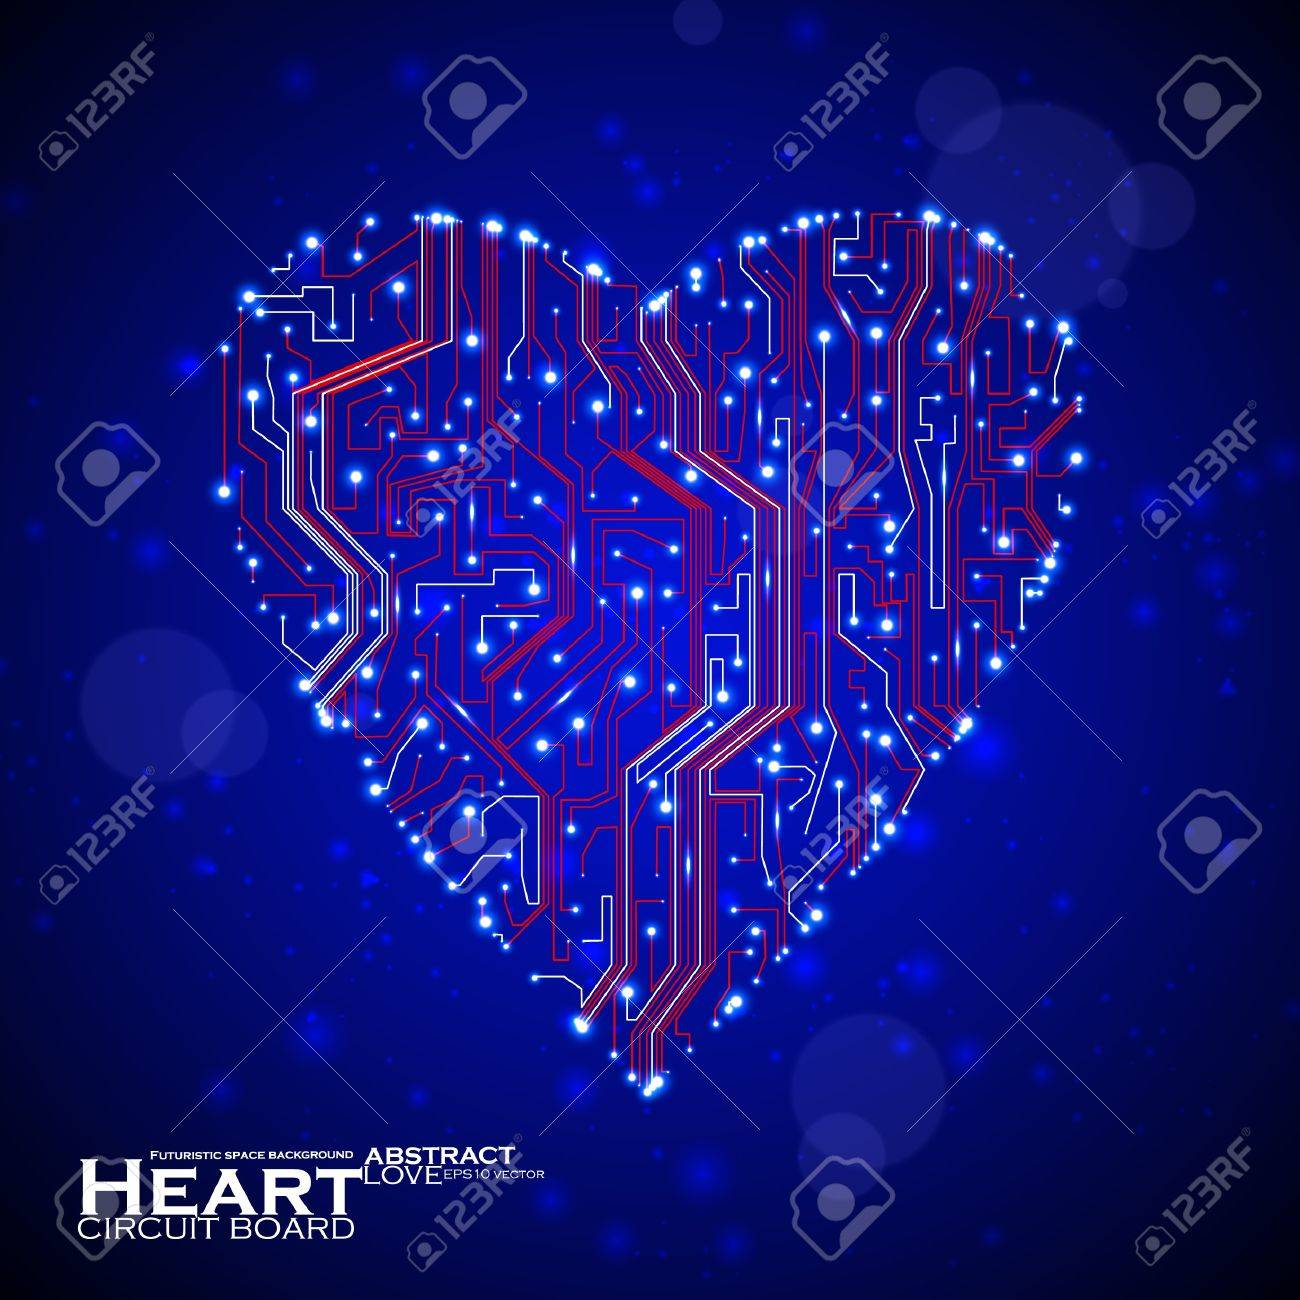 circuit board vector background, technology illustration, form of heart eps10 Stock Vector - 12084389